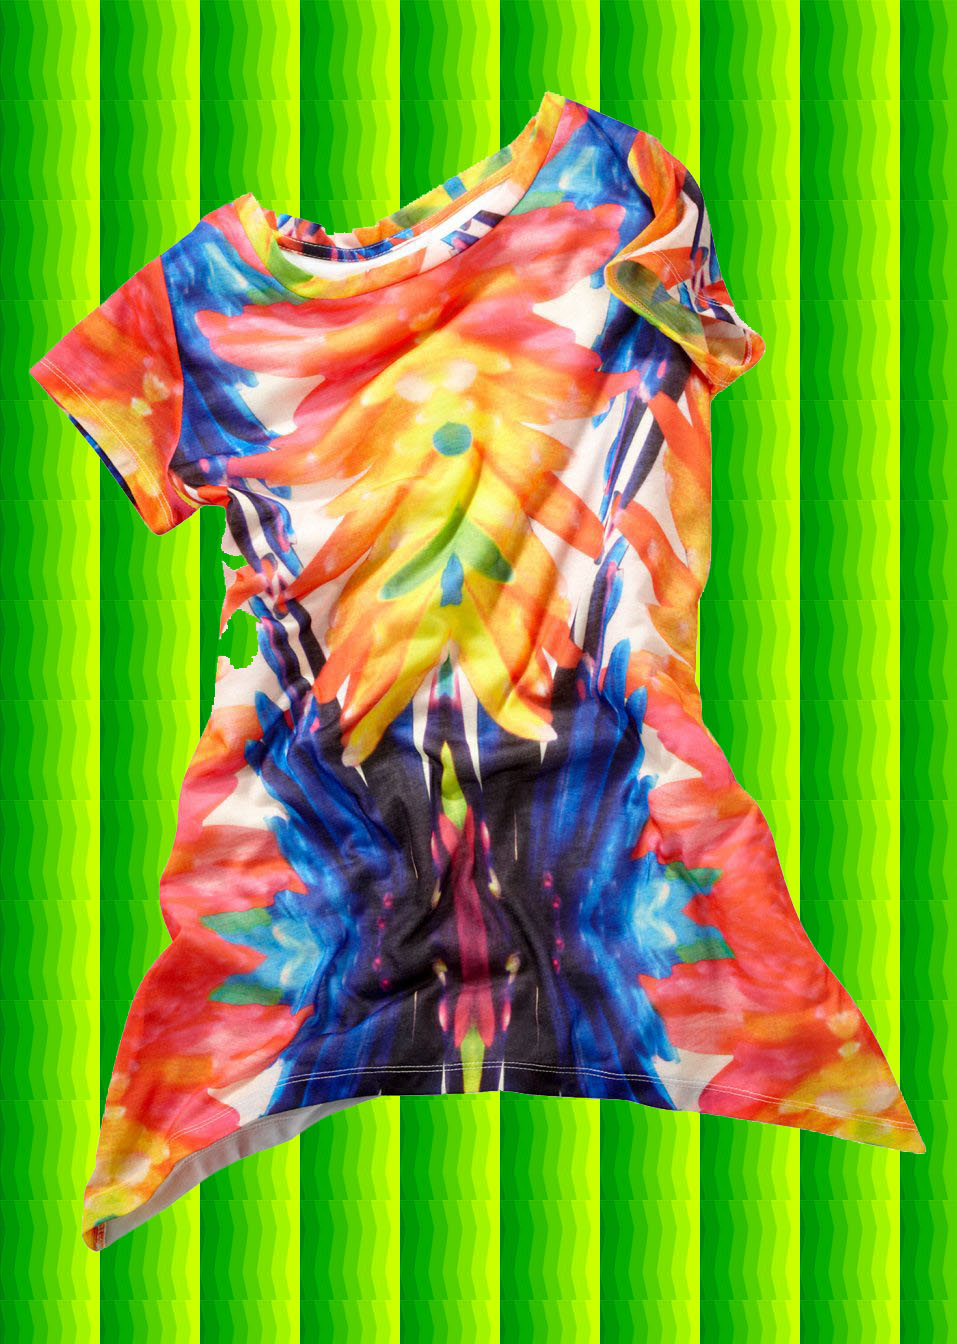 batik zipfel shirt hippie regenbogenfarbig 70er jahre woodstock bunt gr 44 46. Black Bedroom Furniture Sets. Home Design Ideas